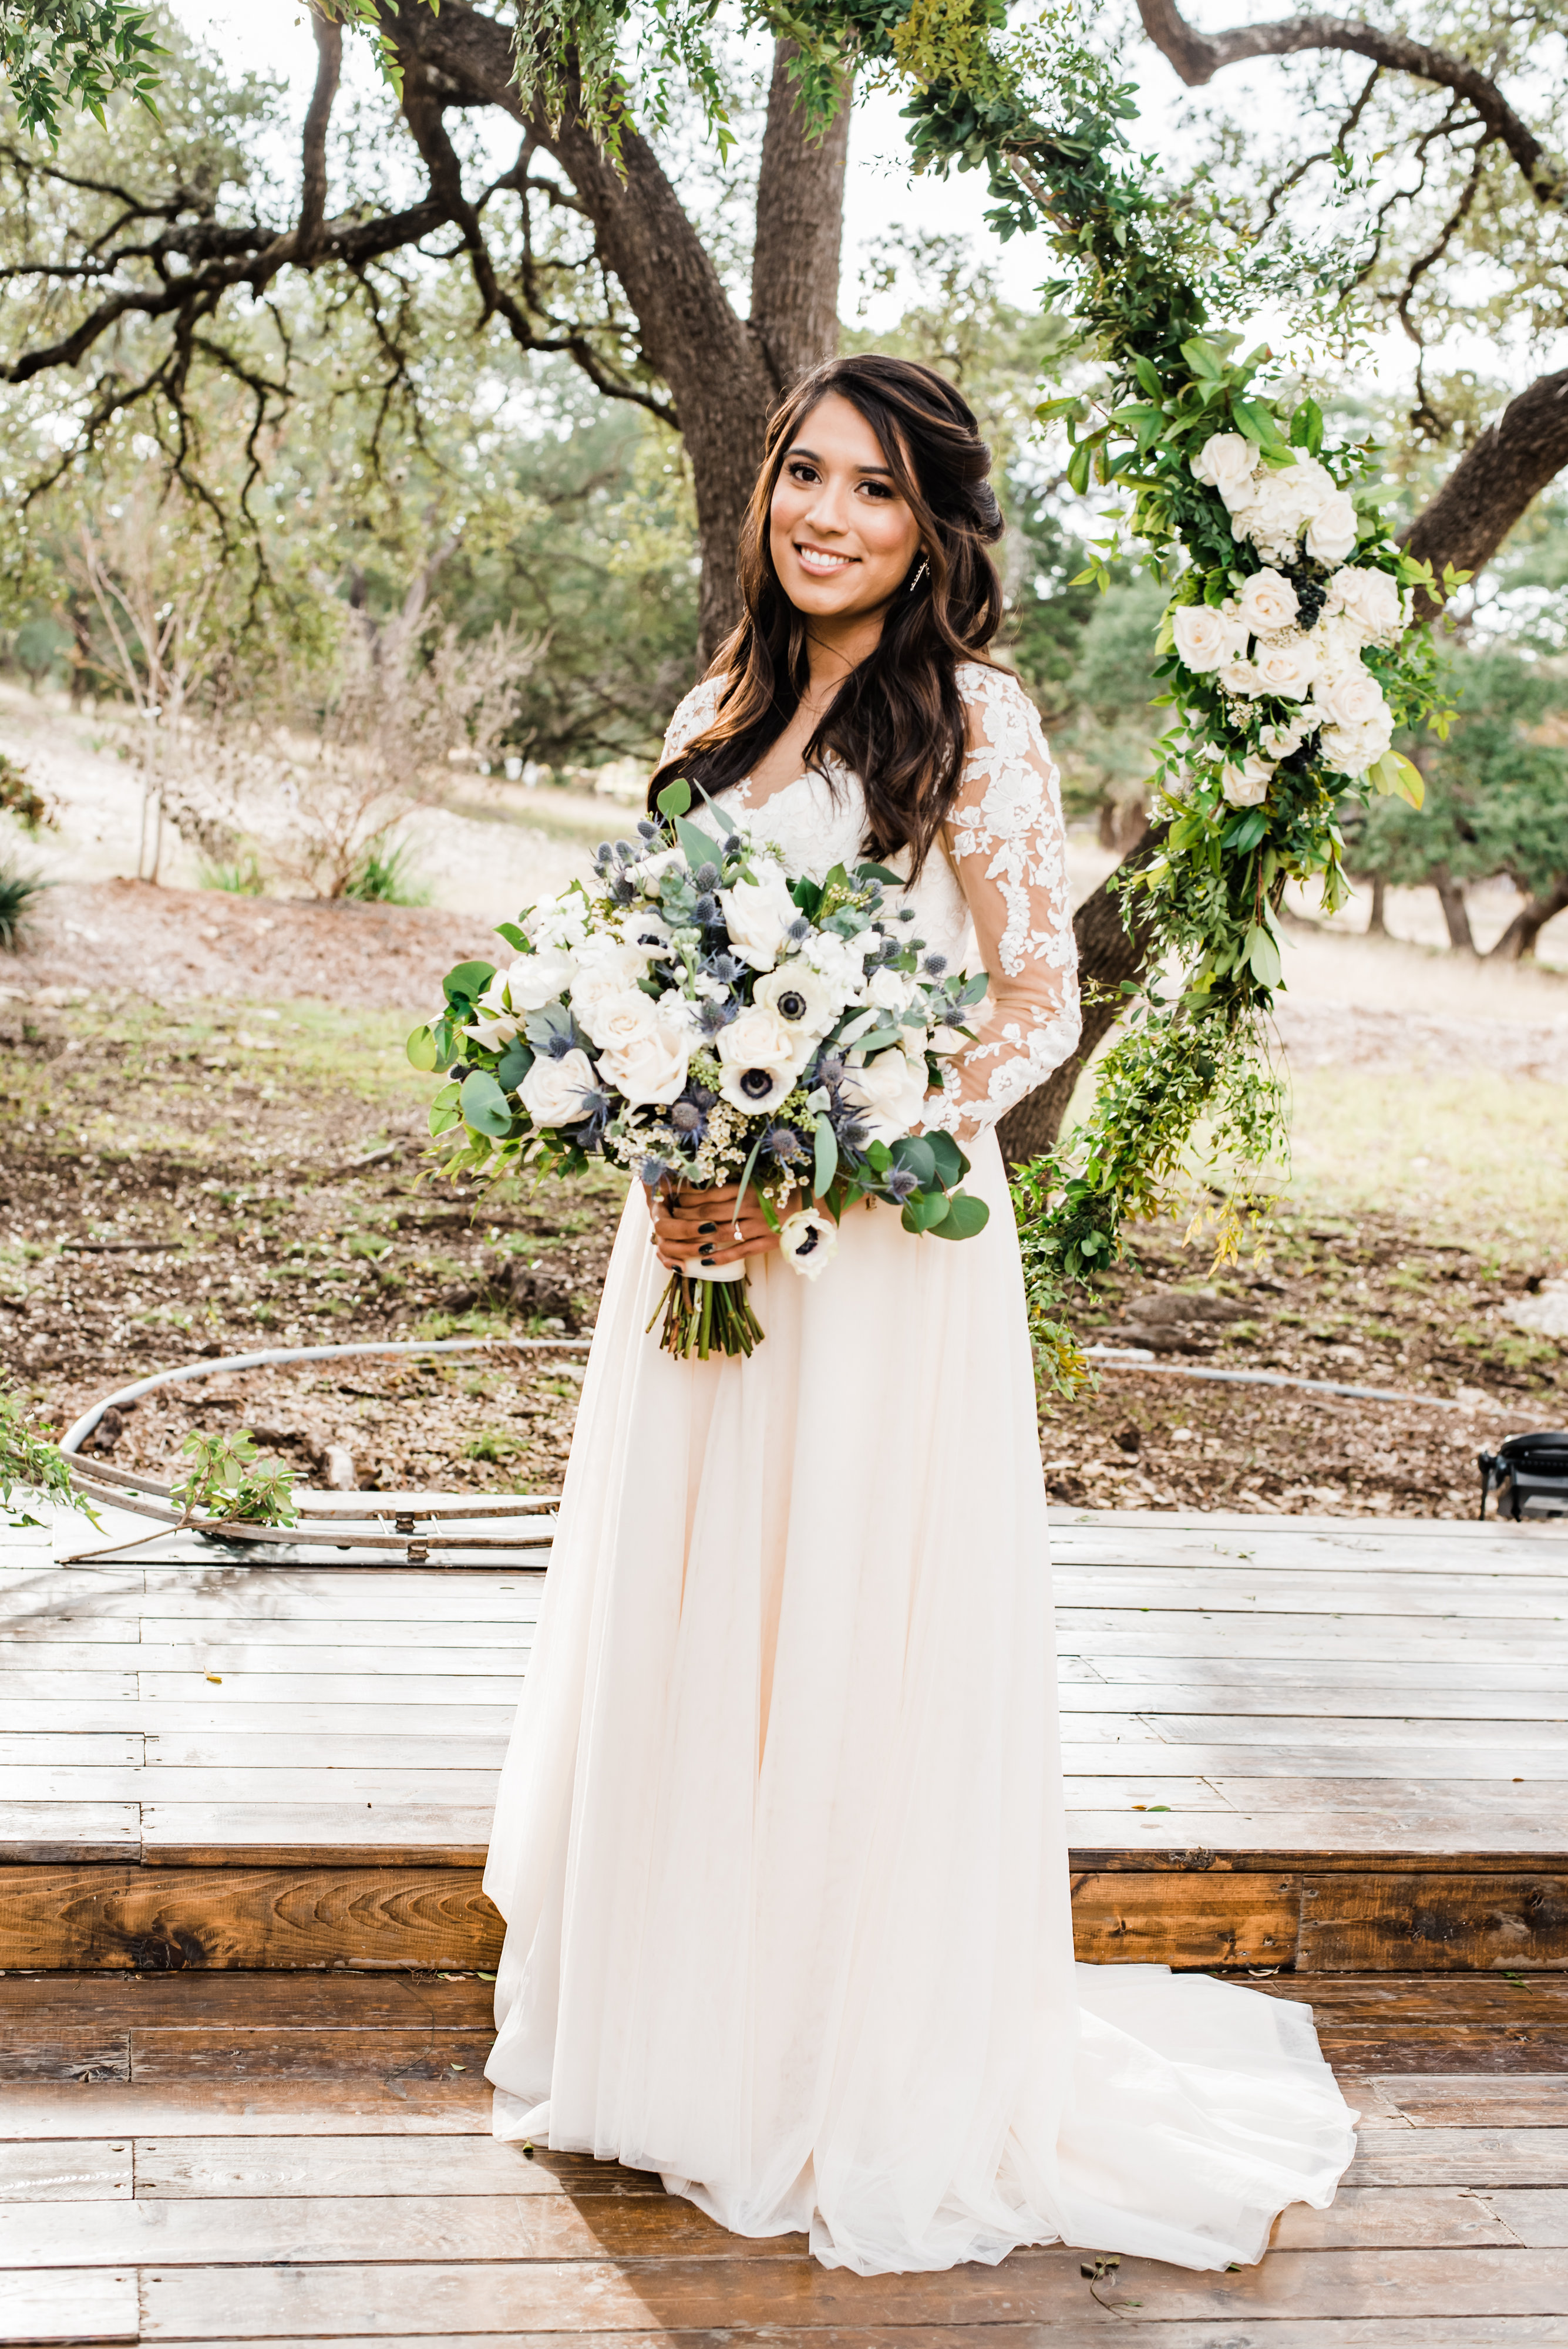 View More: http://cupcakesphoto.pass.us/austinandsteph2018